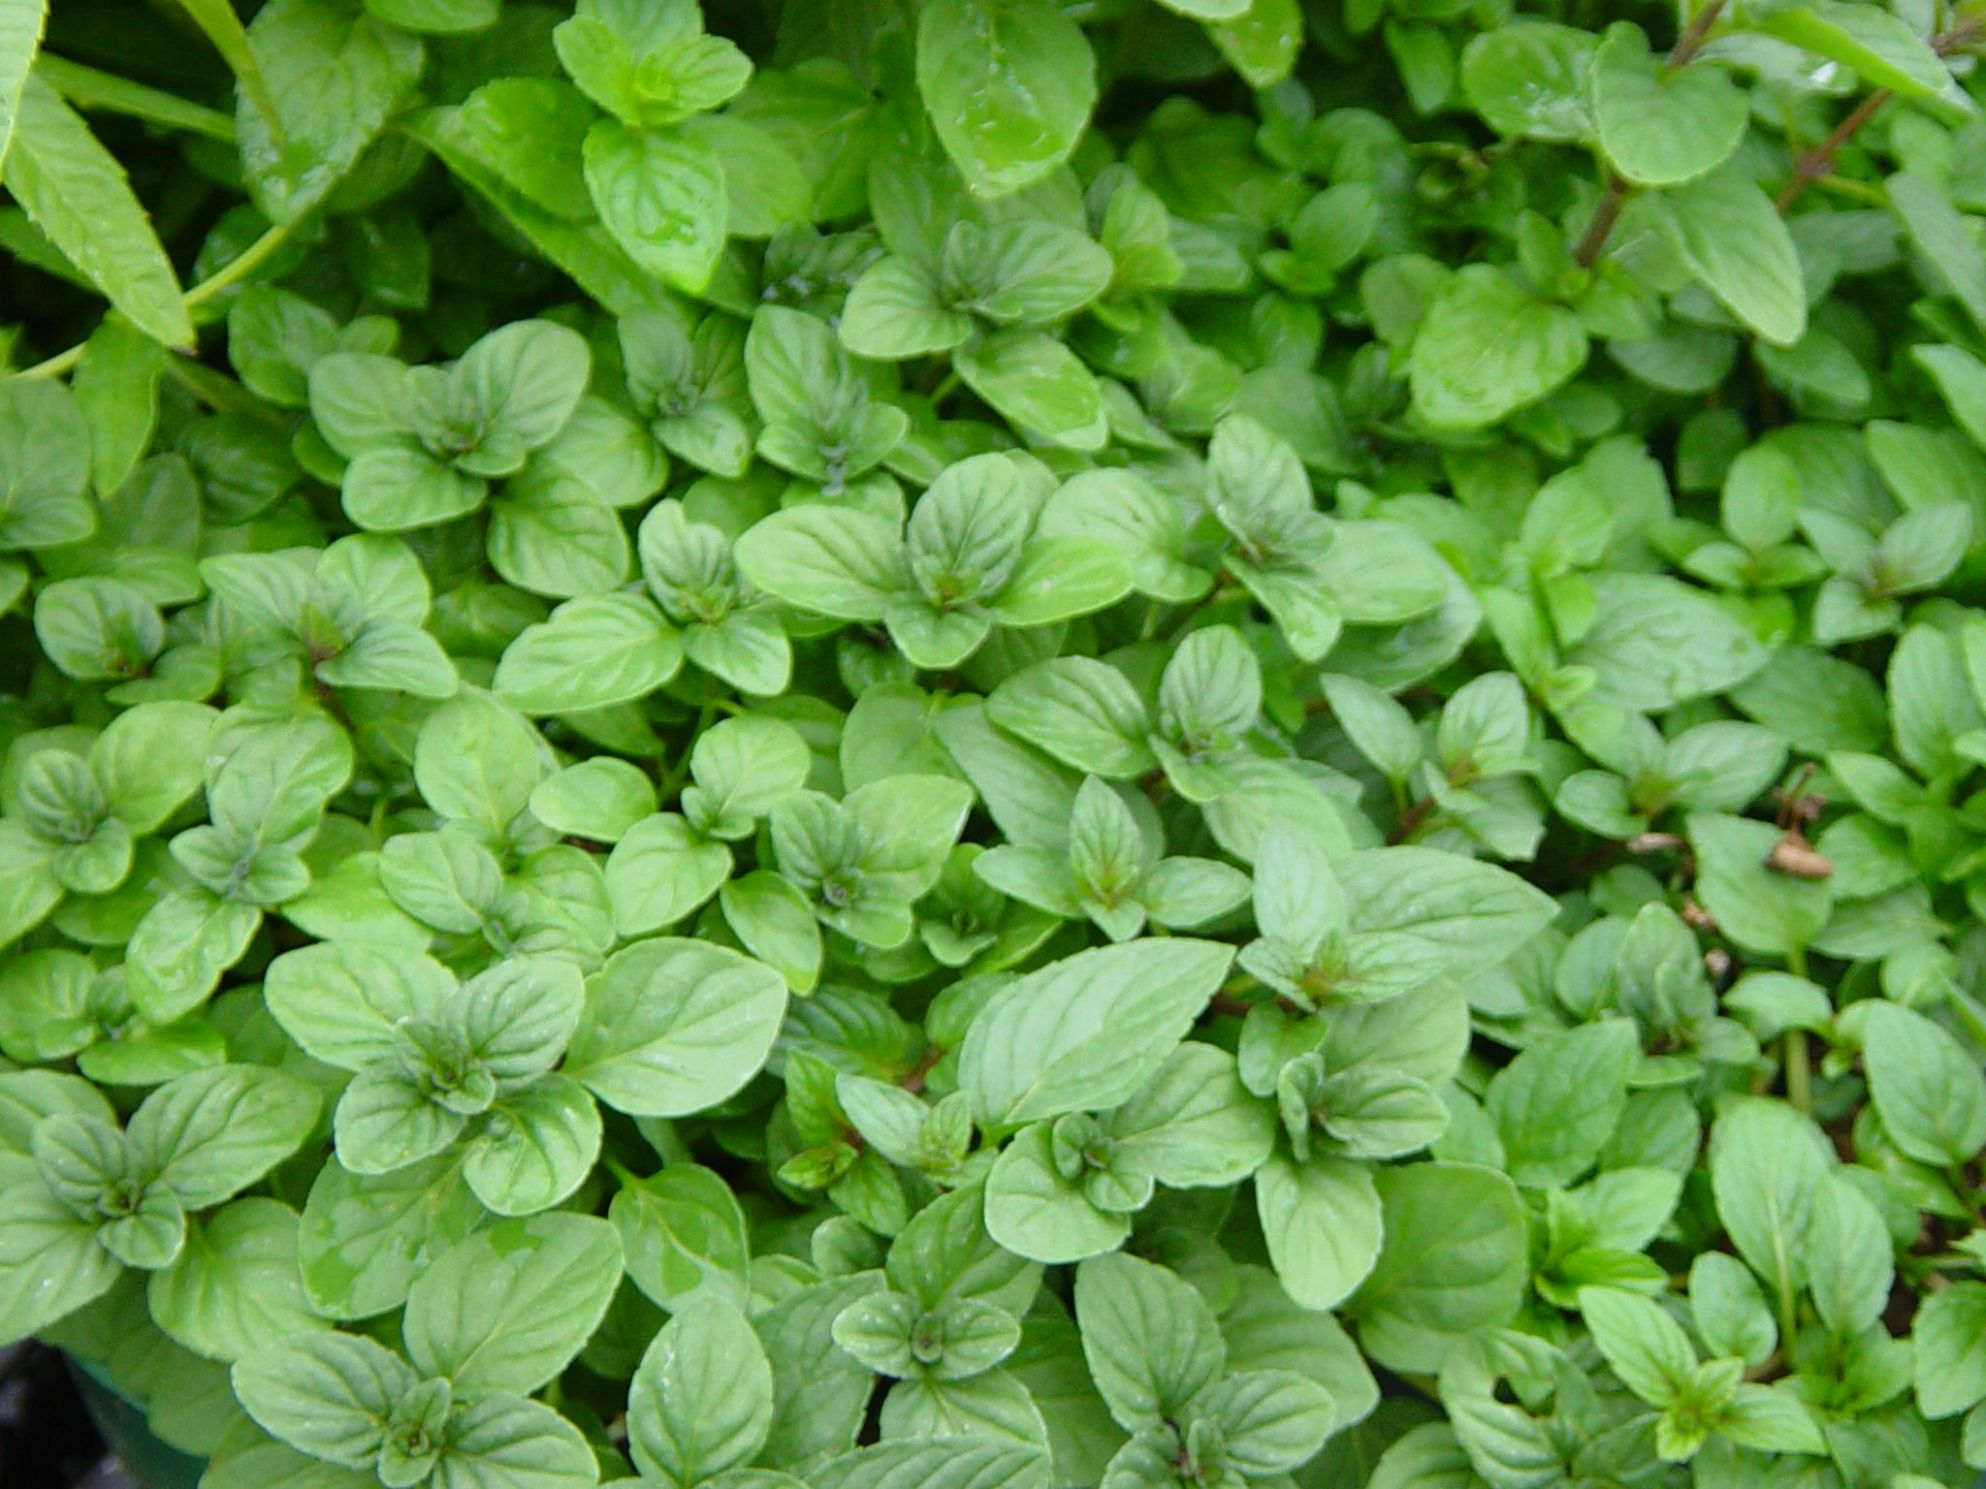 Chocolate Mint Herb | Mint chocolate, Mint plants, Chocolate mint ...